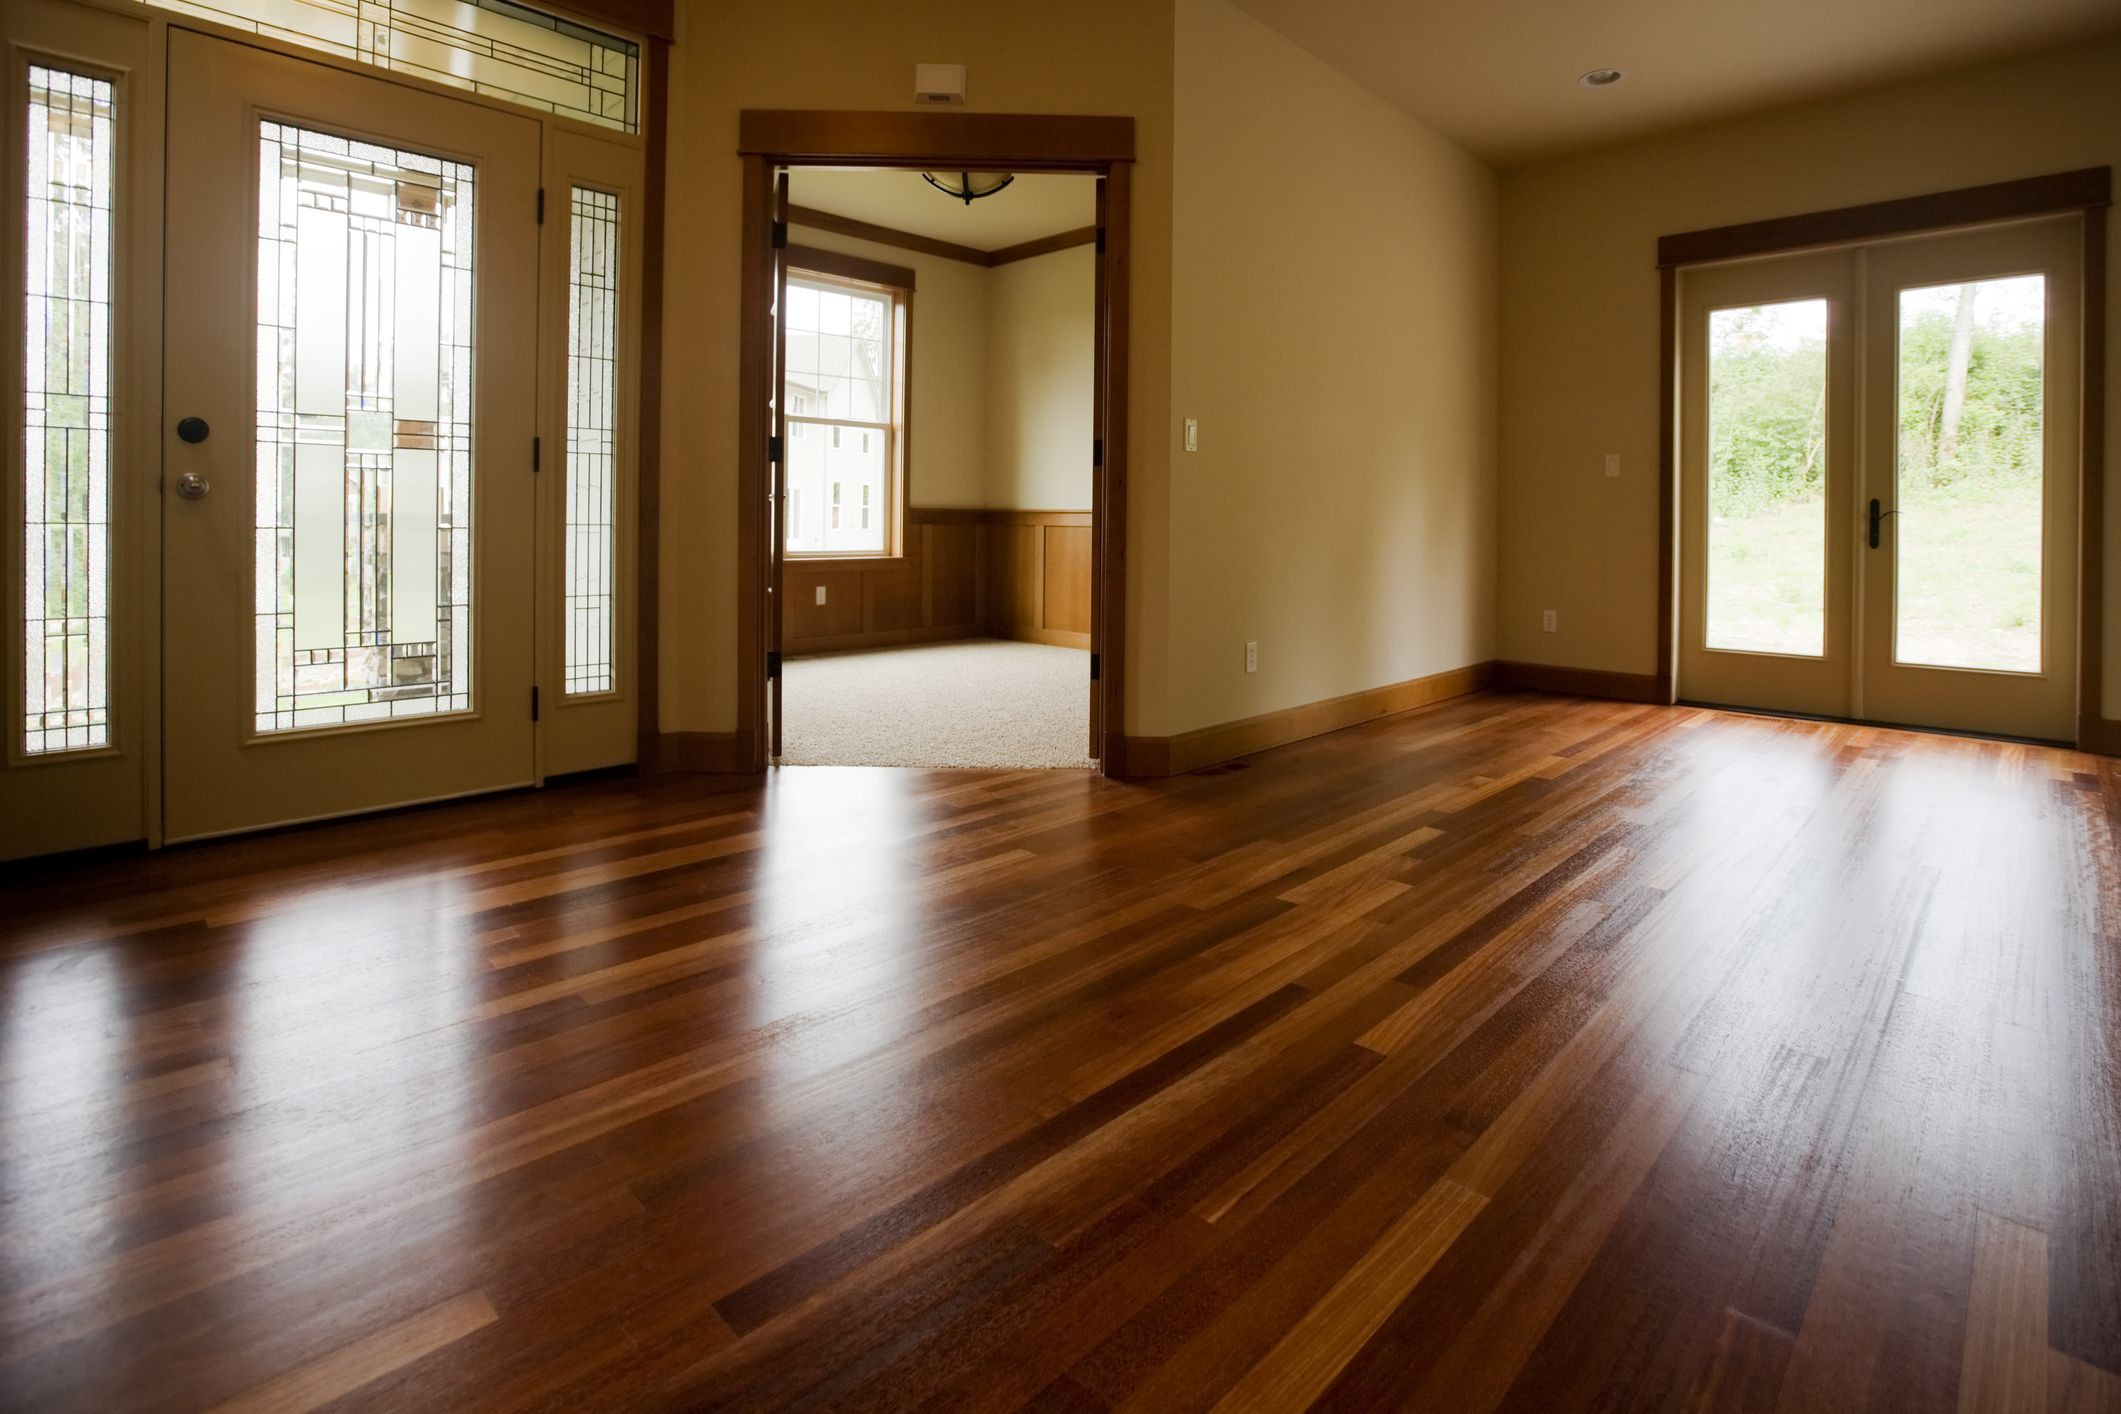 14 Lovely Hardwood Floor To Carpet Trim Unique Flooring Ideas